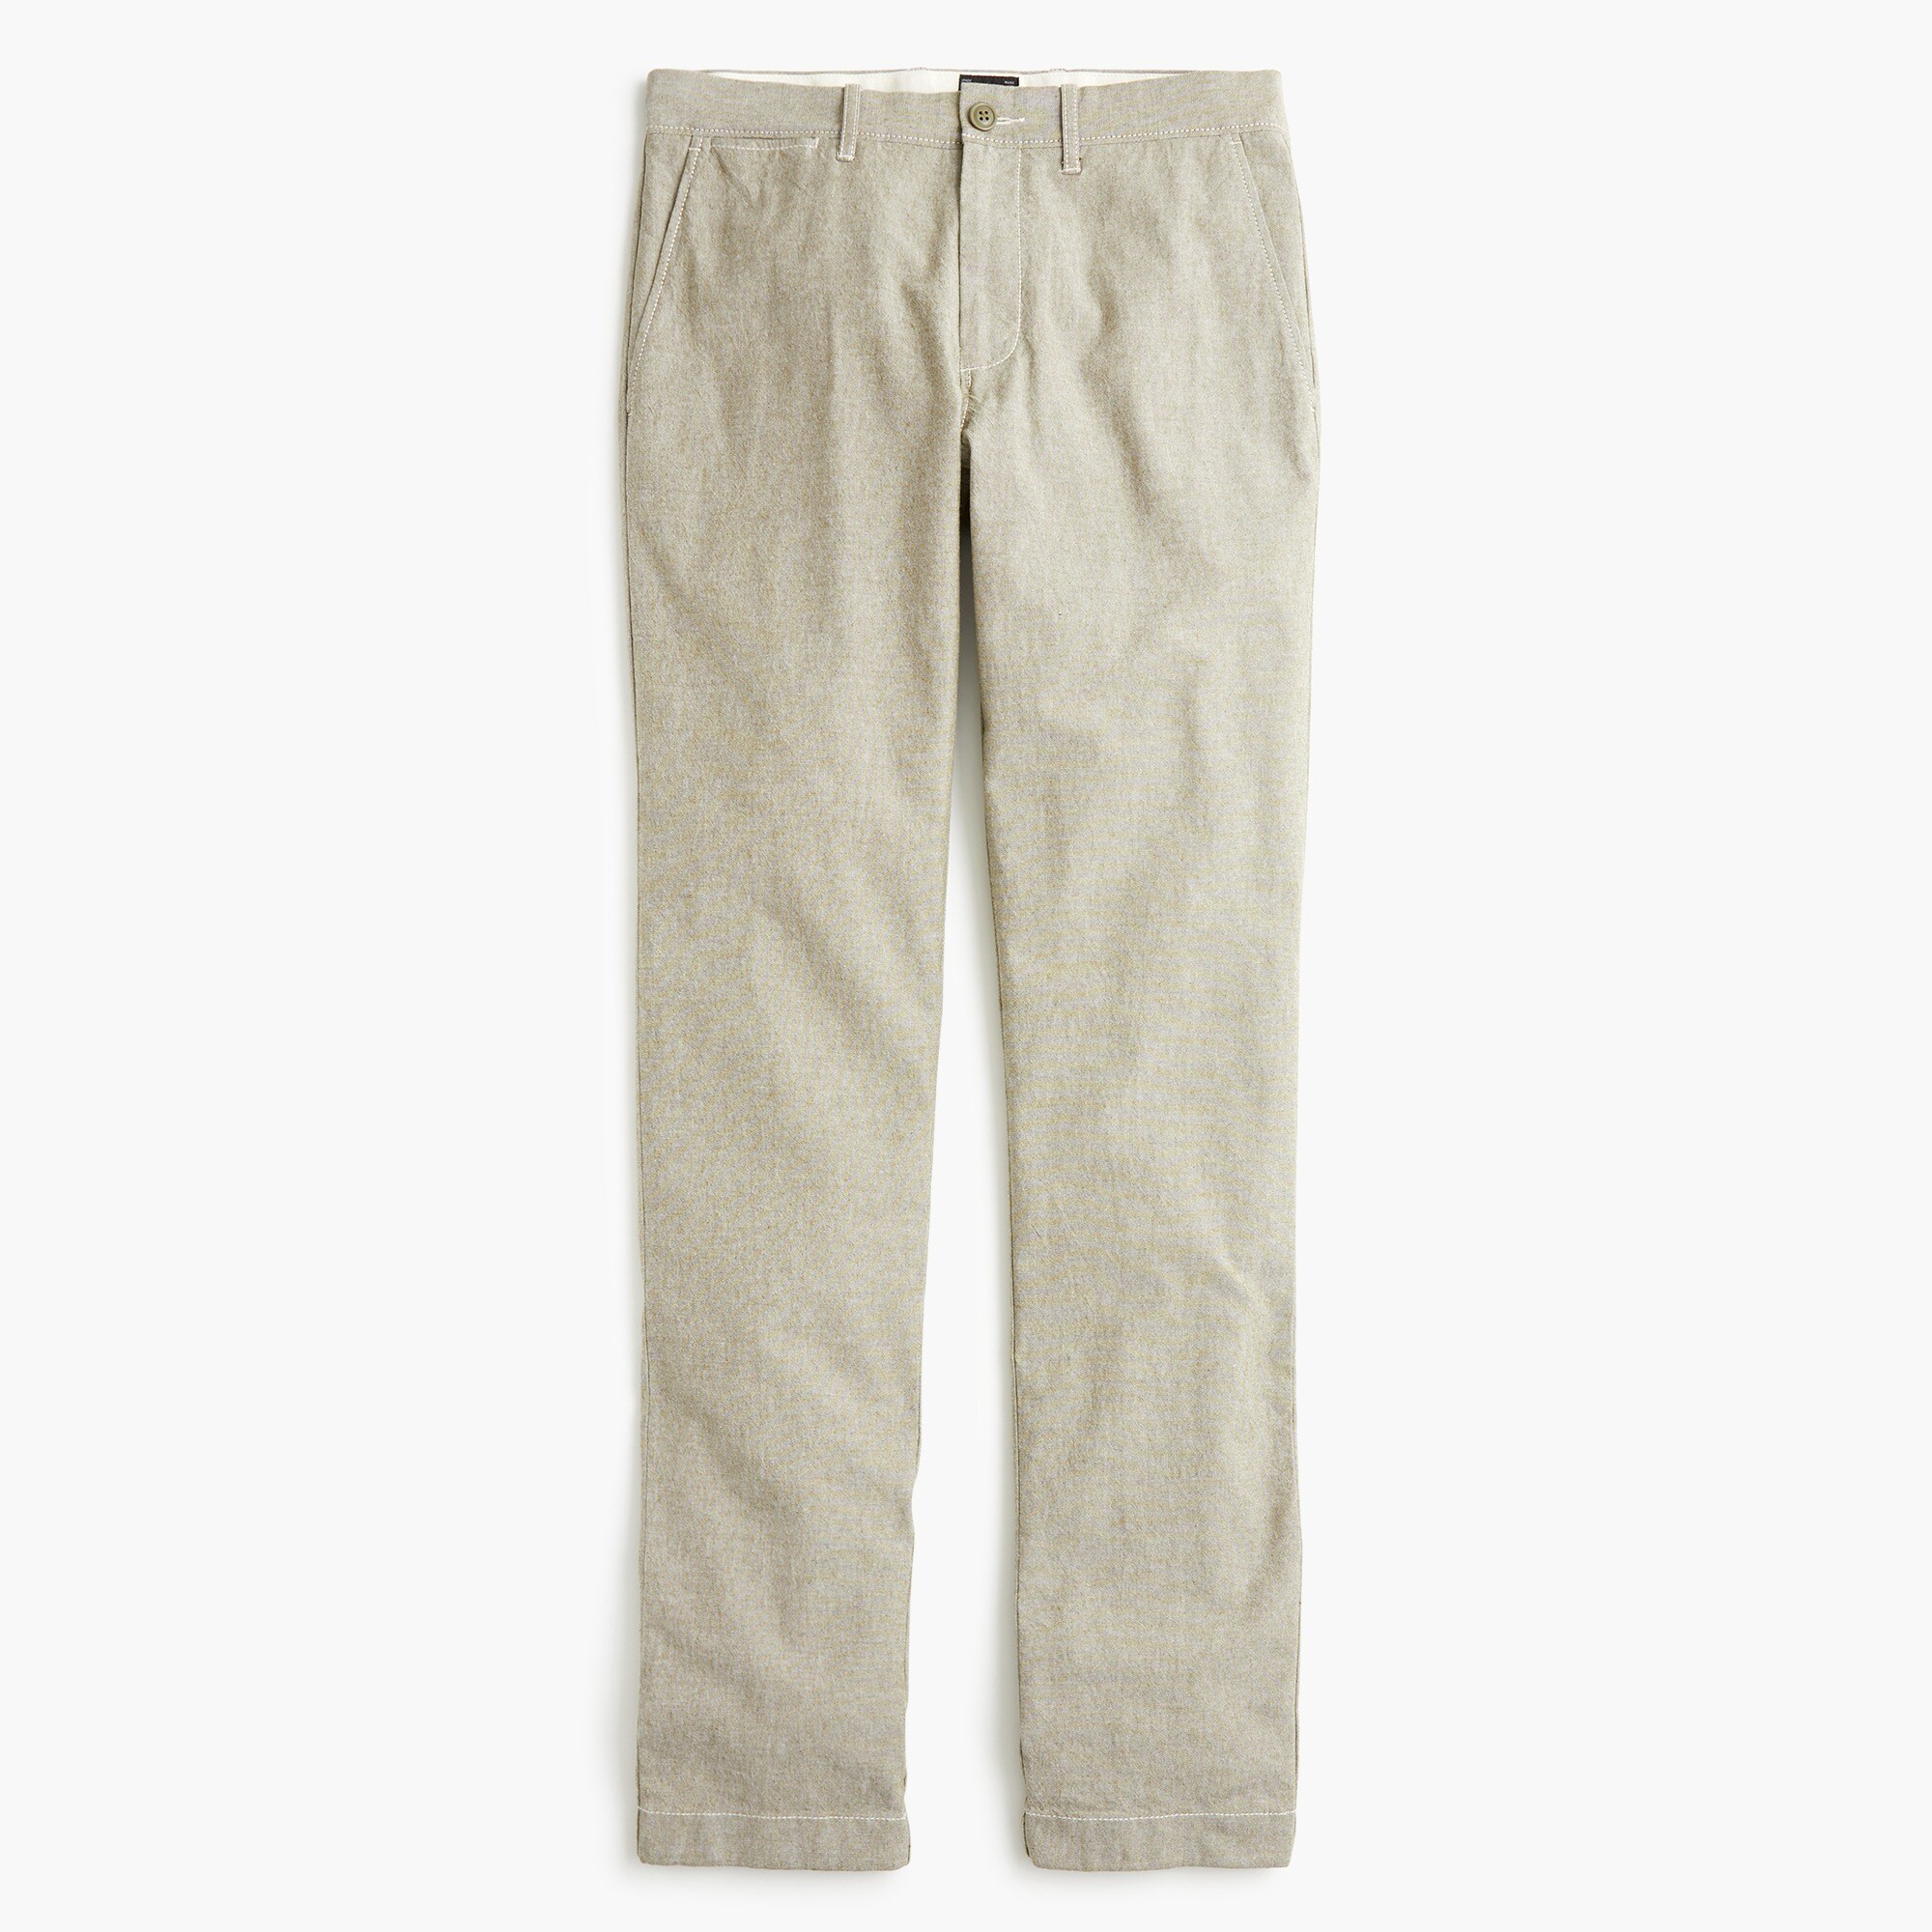 770 Straight-fit pant in stretch chambray